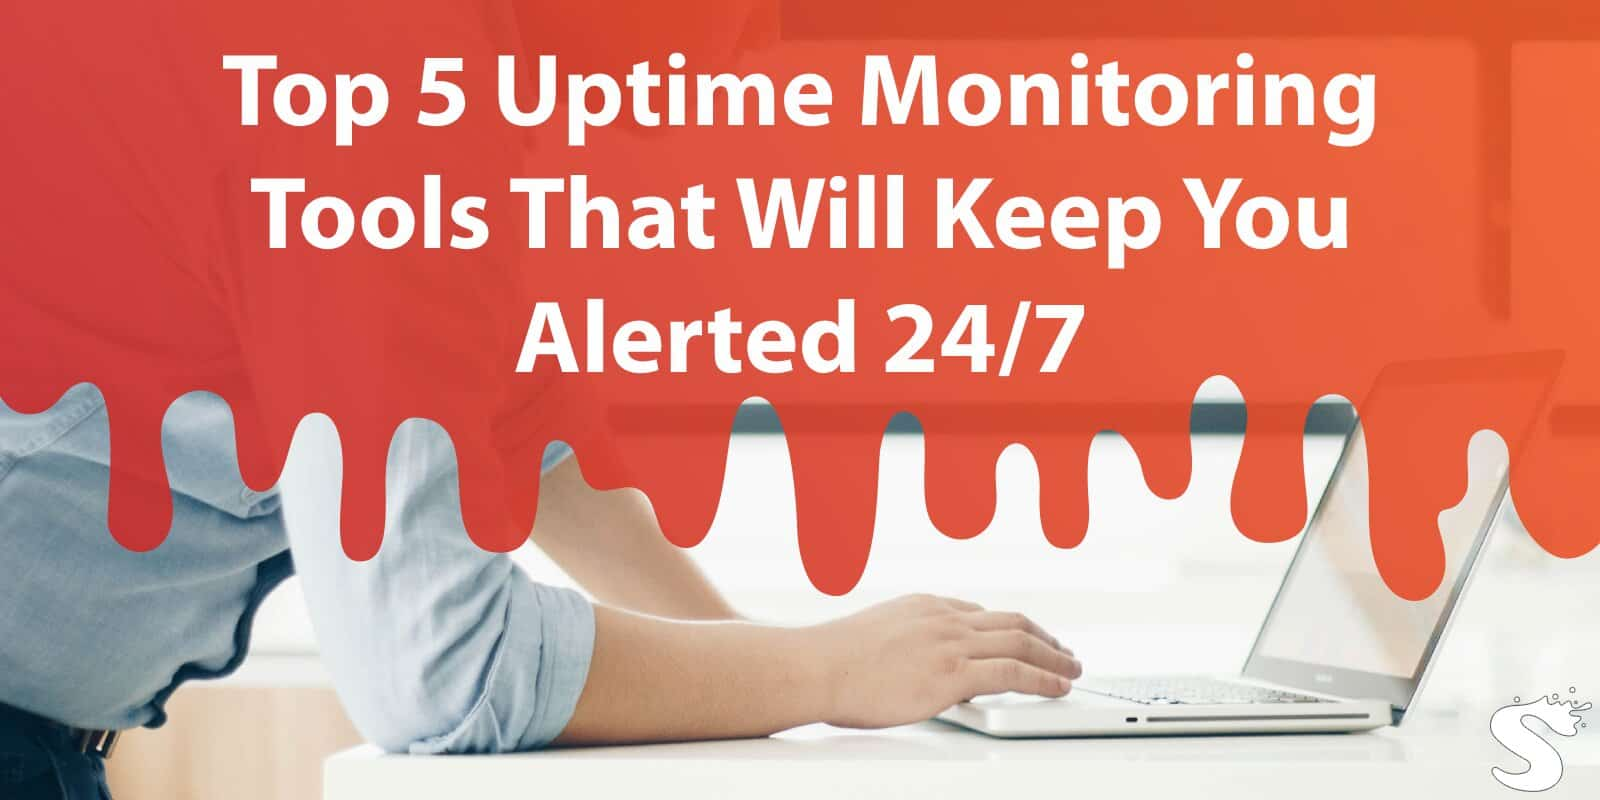 Top 5 Uptime Monitoring Tools